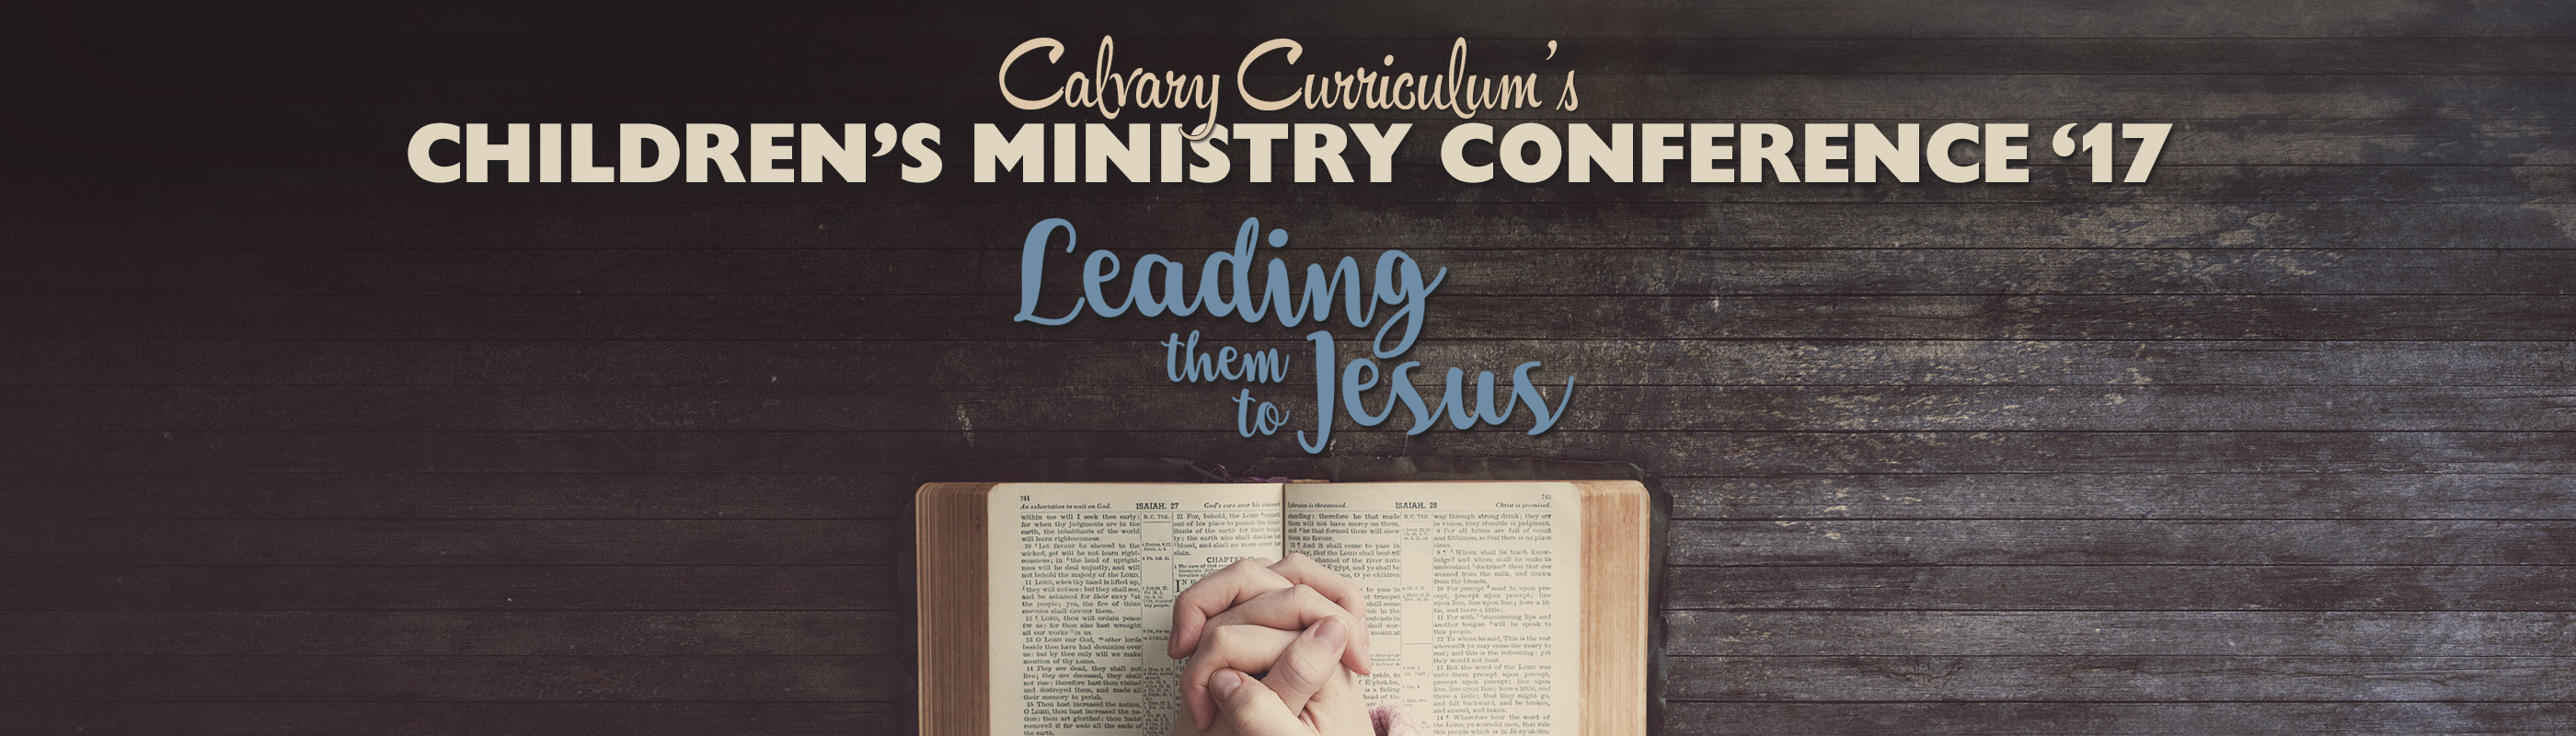 CC's Children's Ministry Conferences